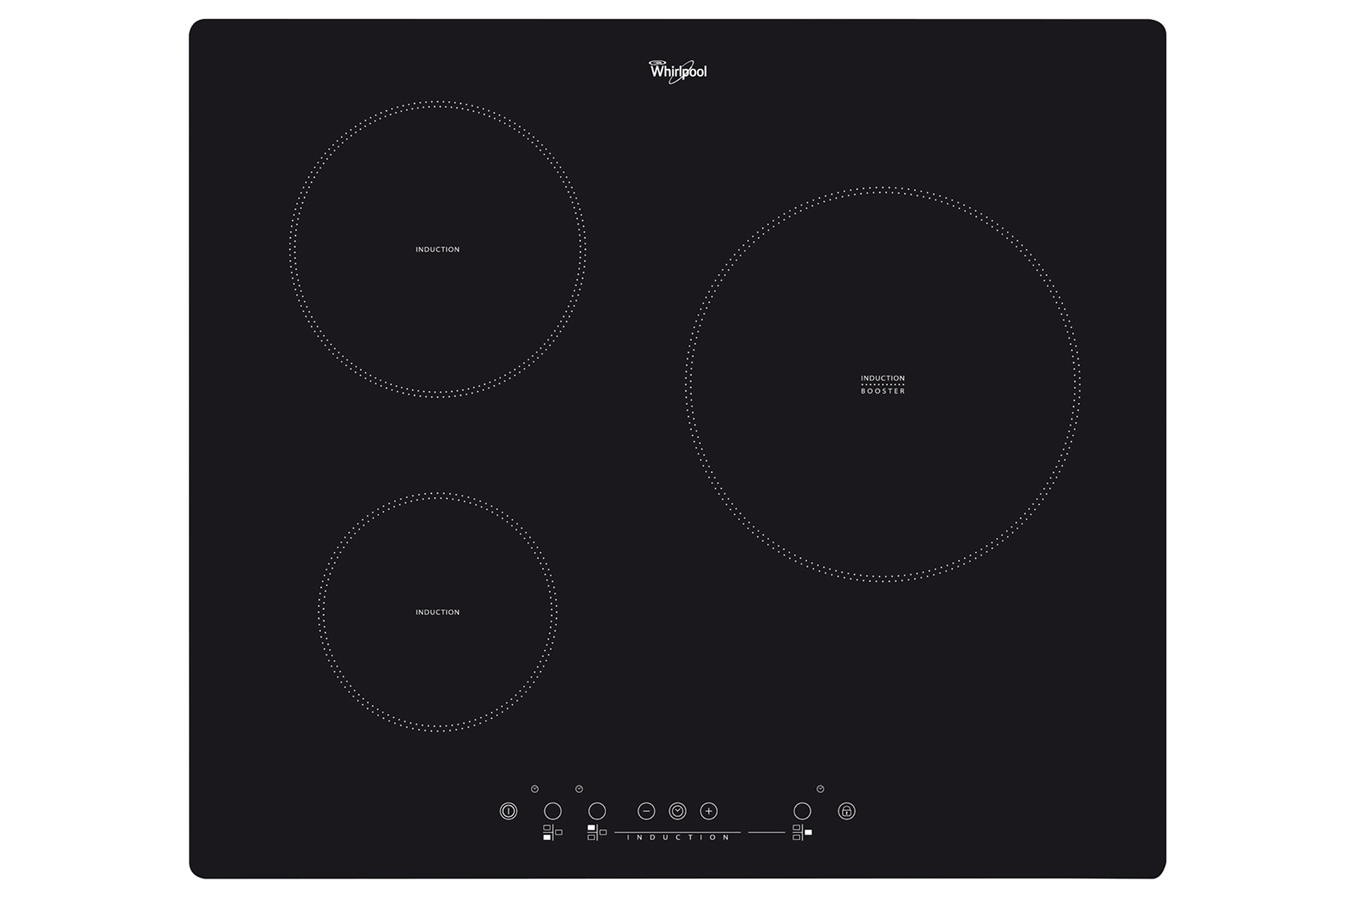 Probleme plaque induction whirlpool les - Ikea plaque induction ...